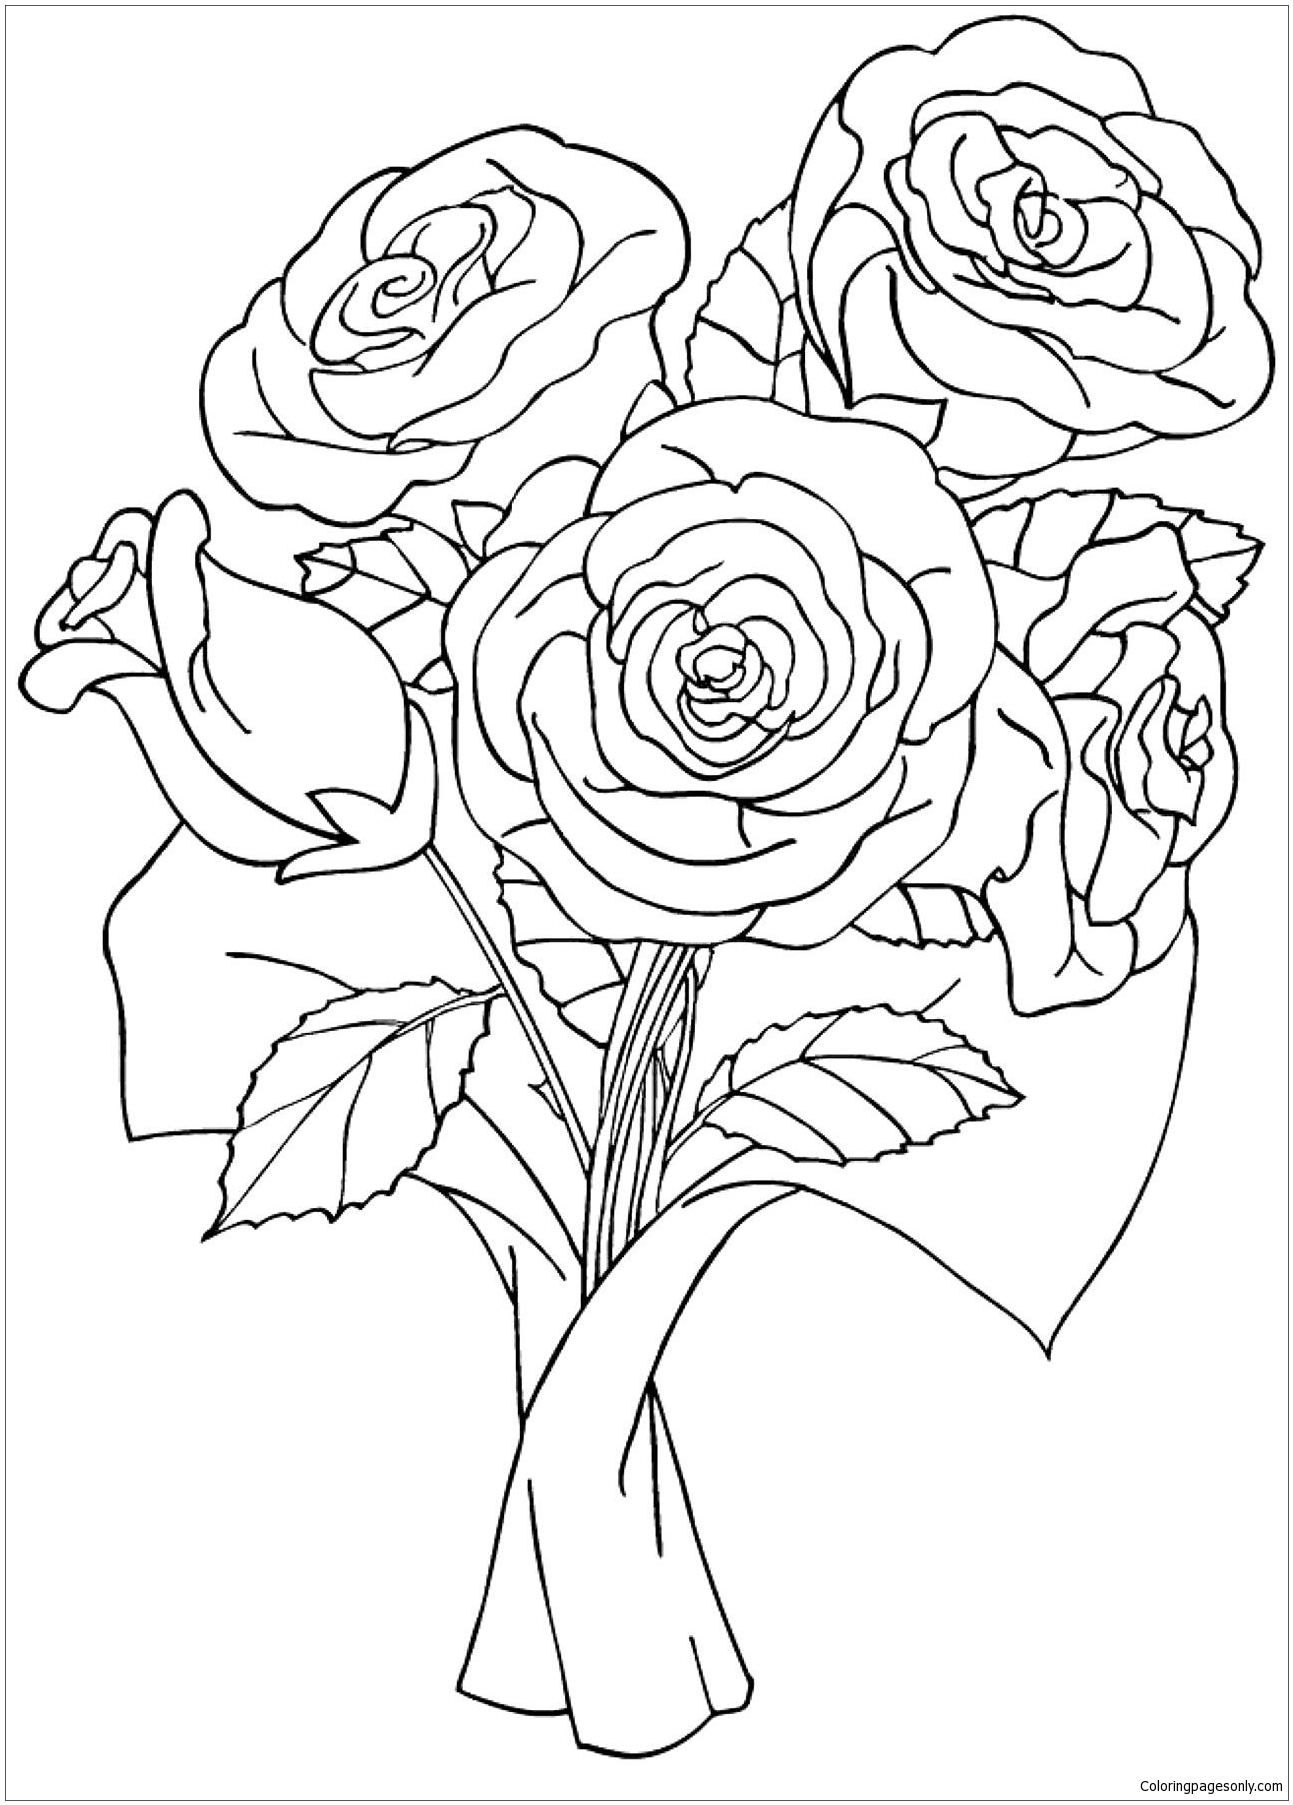 coloring book rose rose coloring page free printable coloring pages book coloring rose